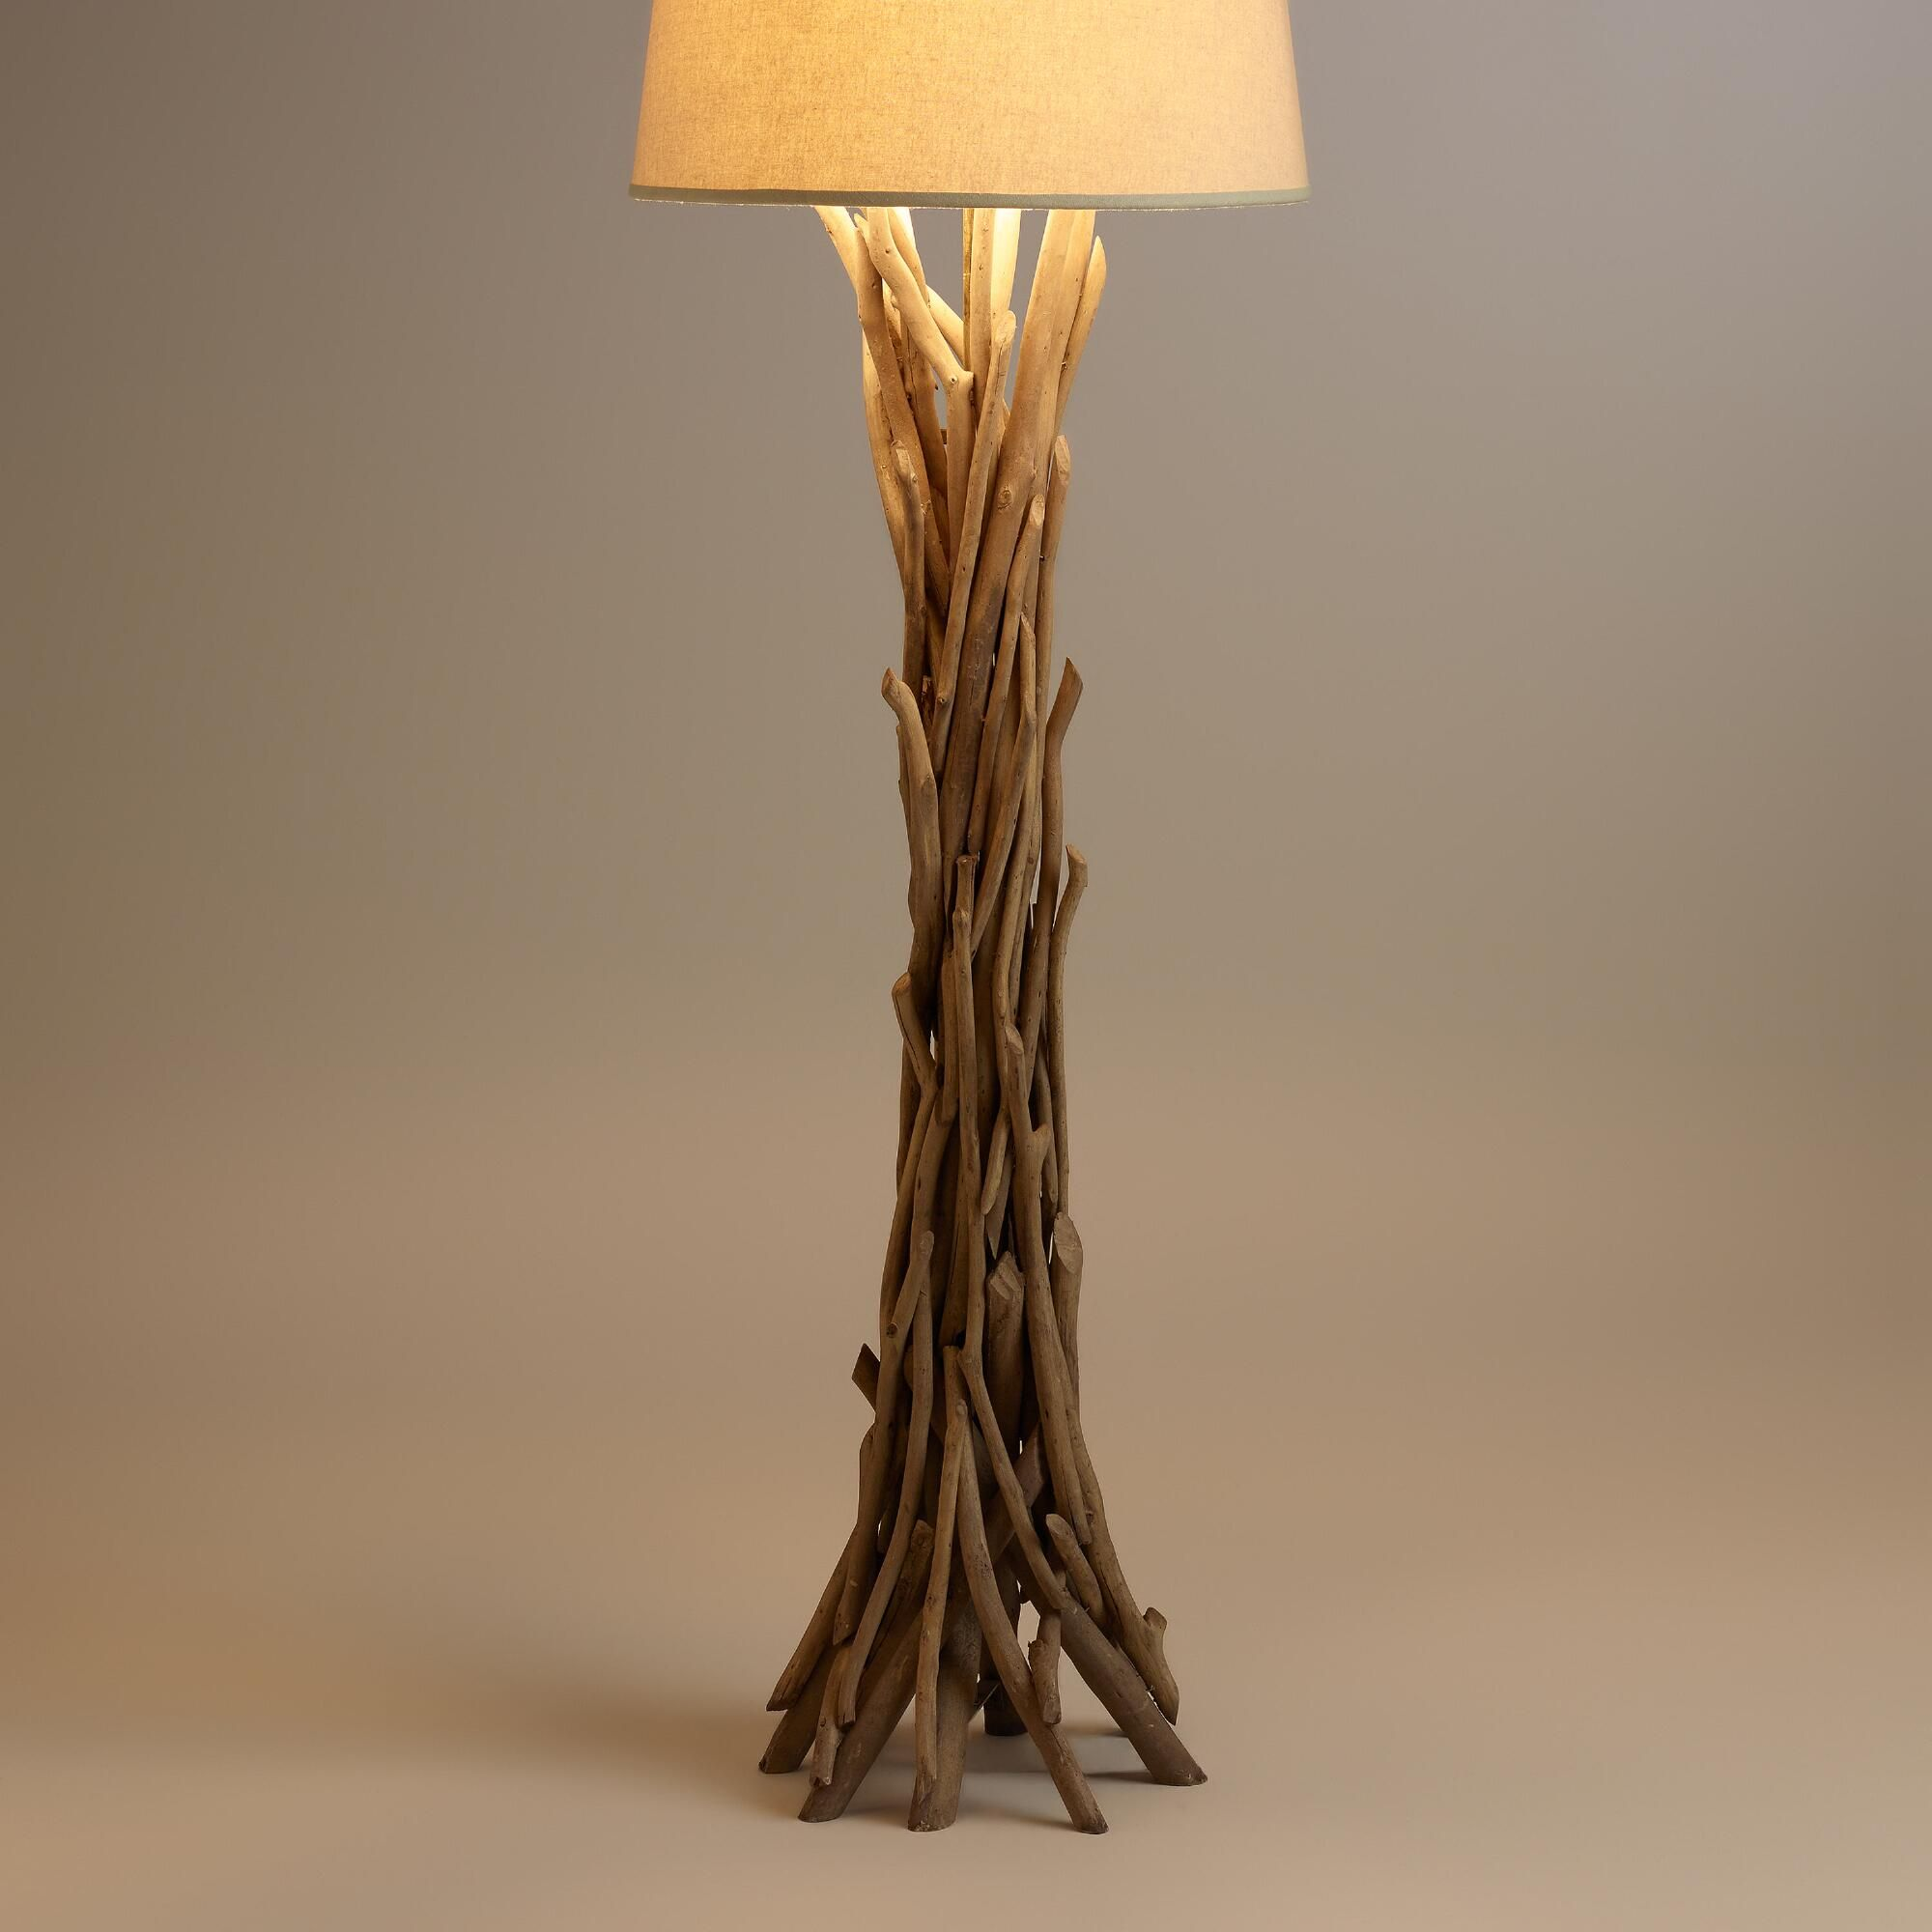 amazon table uk for sale lamps floor lamp com etsustore barn pottery driftwood